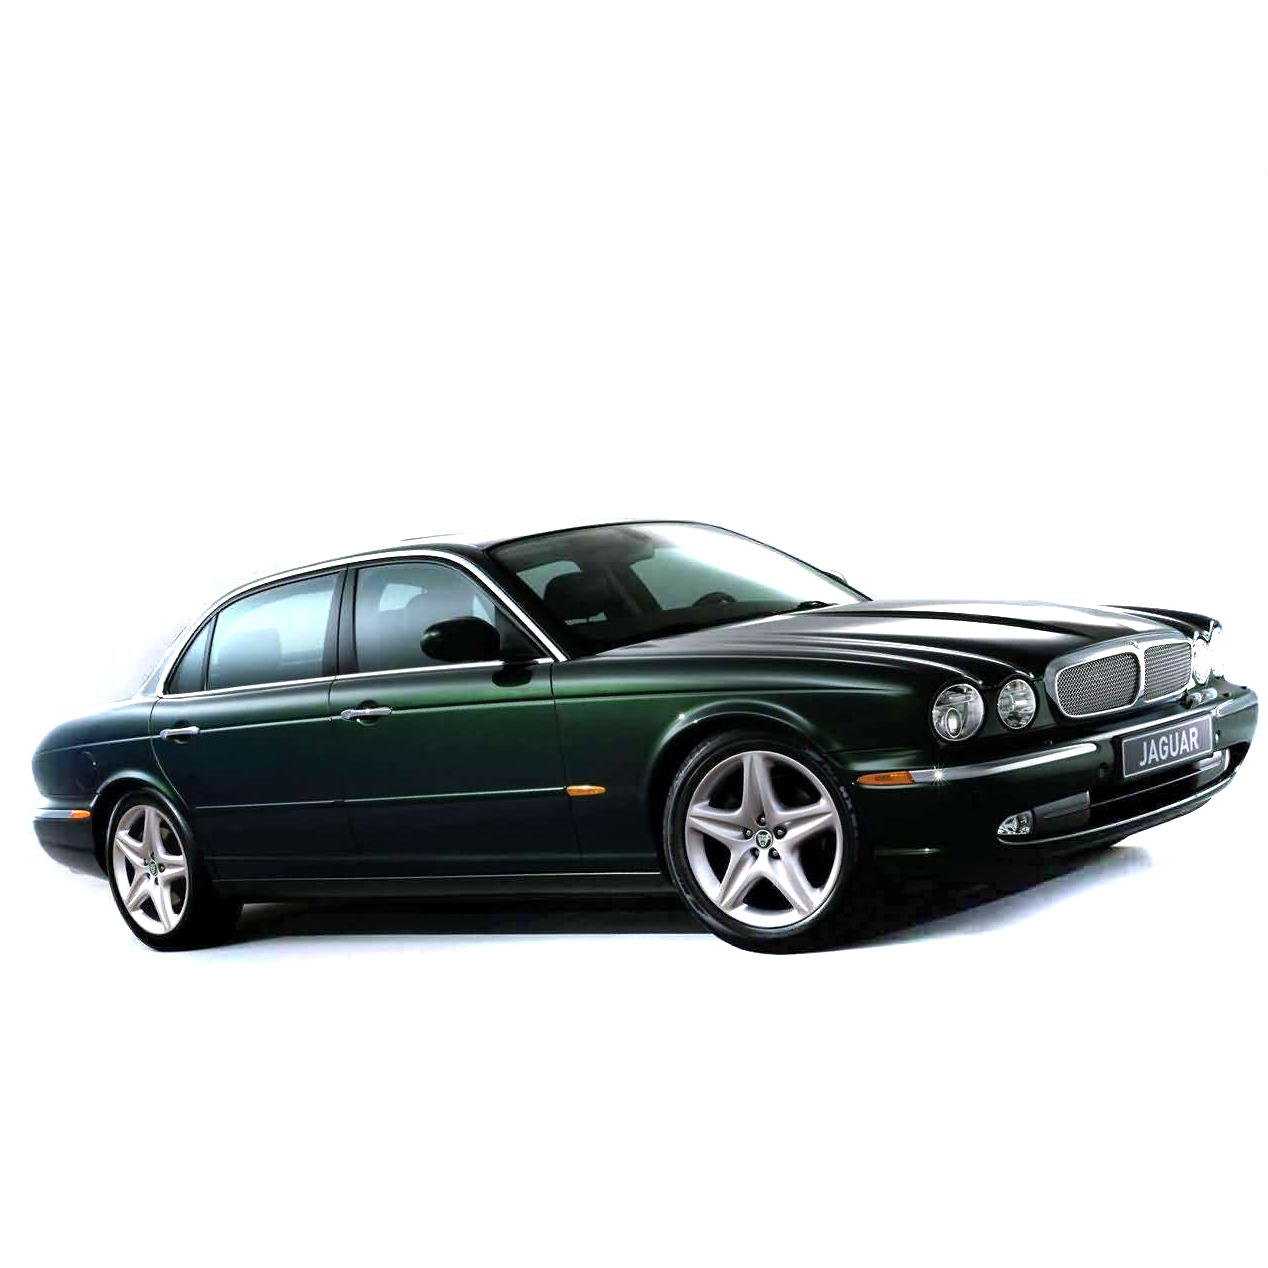 Jaguar XJ8 (Soverign LWB) 1997-2003